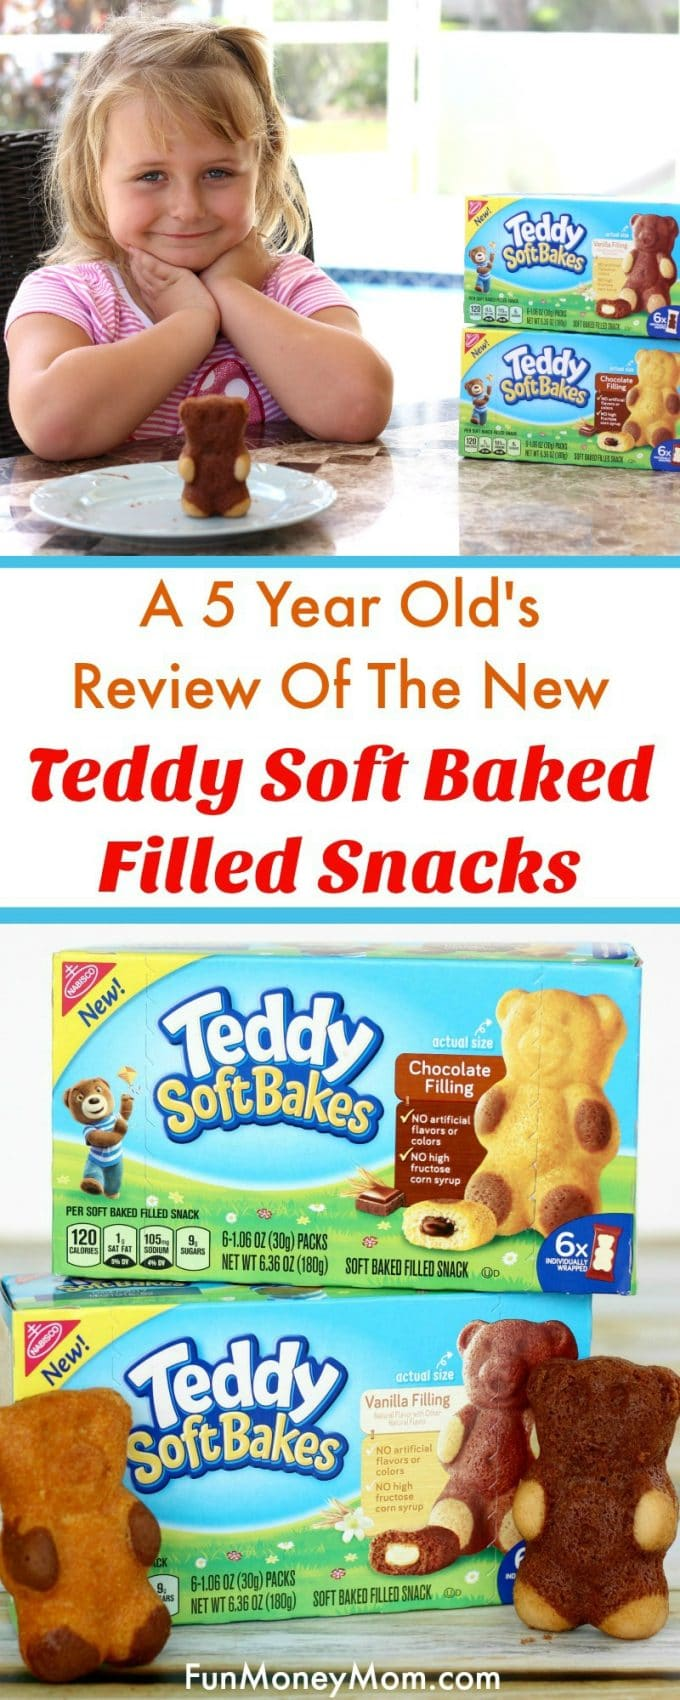 Looking for some new snack options for the kids? Find out what my daughter thought of the new TEDDY SOFT BAKED Filled Snacks in her very first full video review!